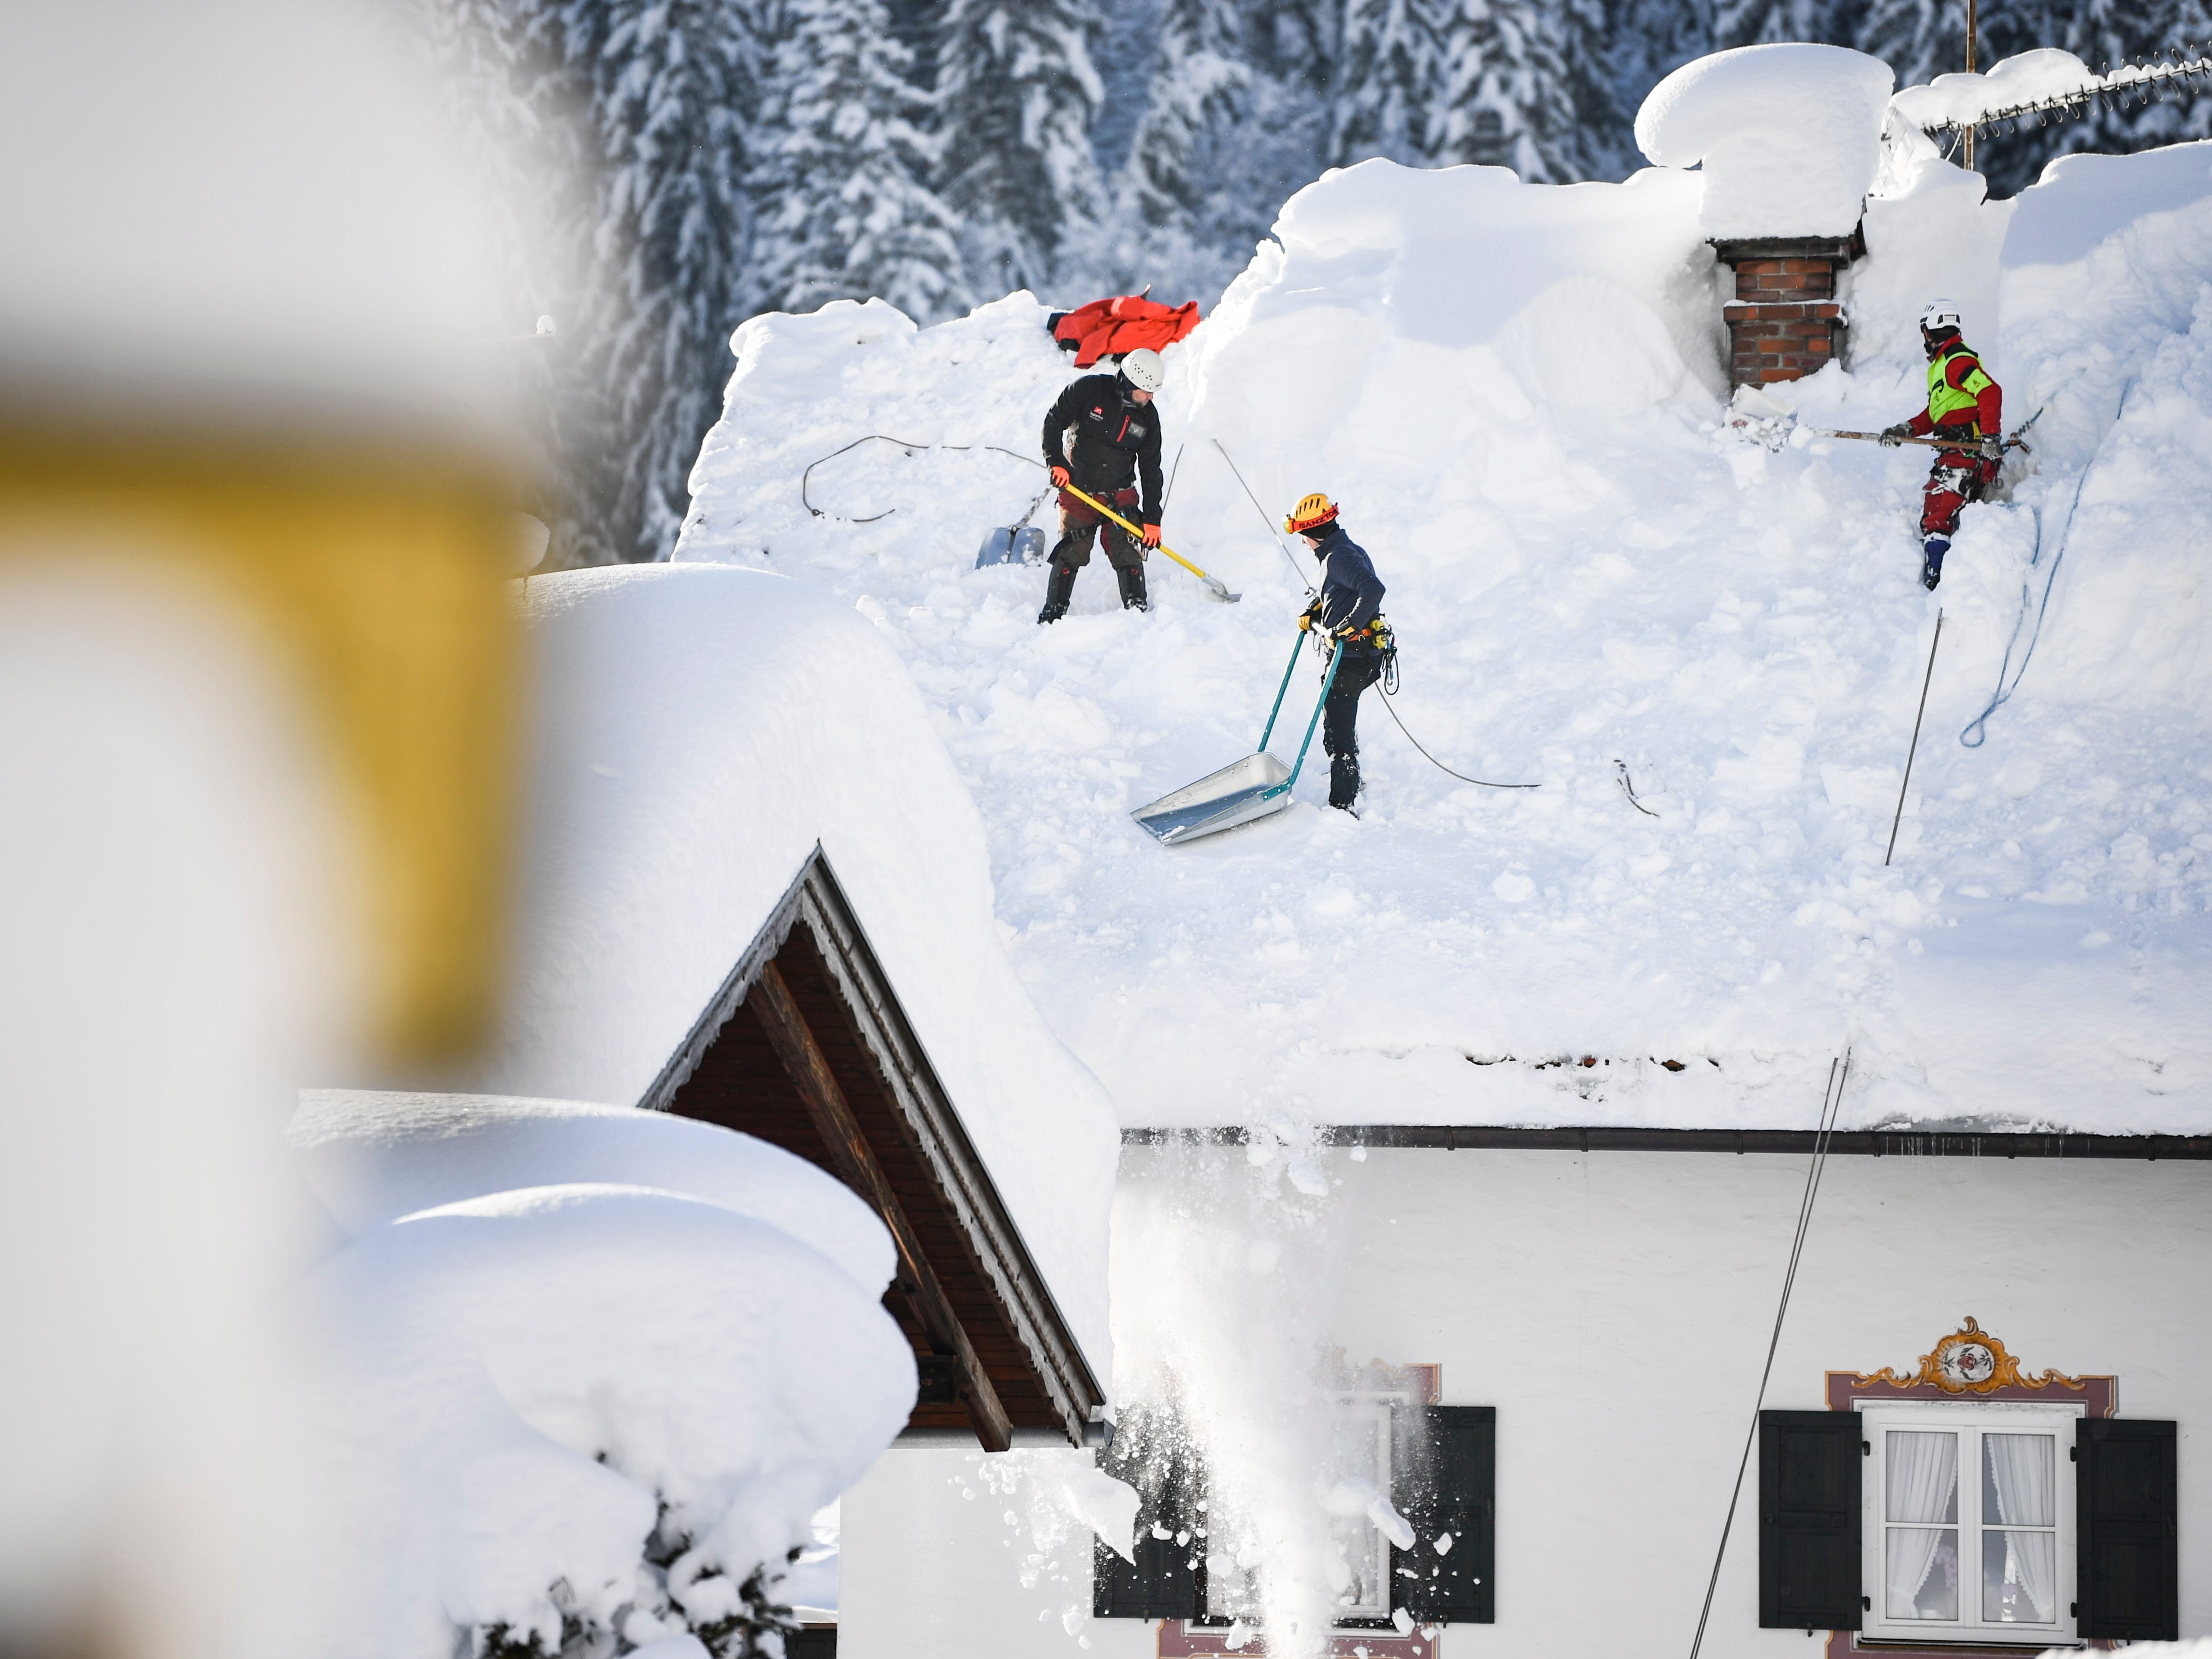 Workers clear a roof in Gerold, Germany, Jan. 11, 2019.